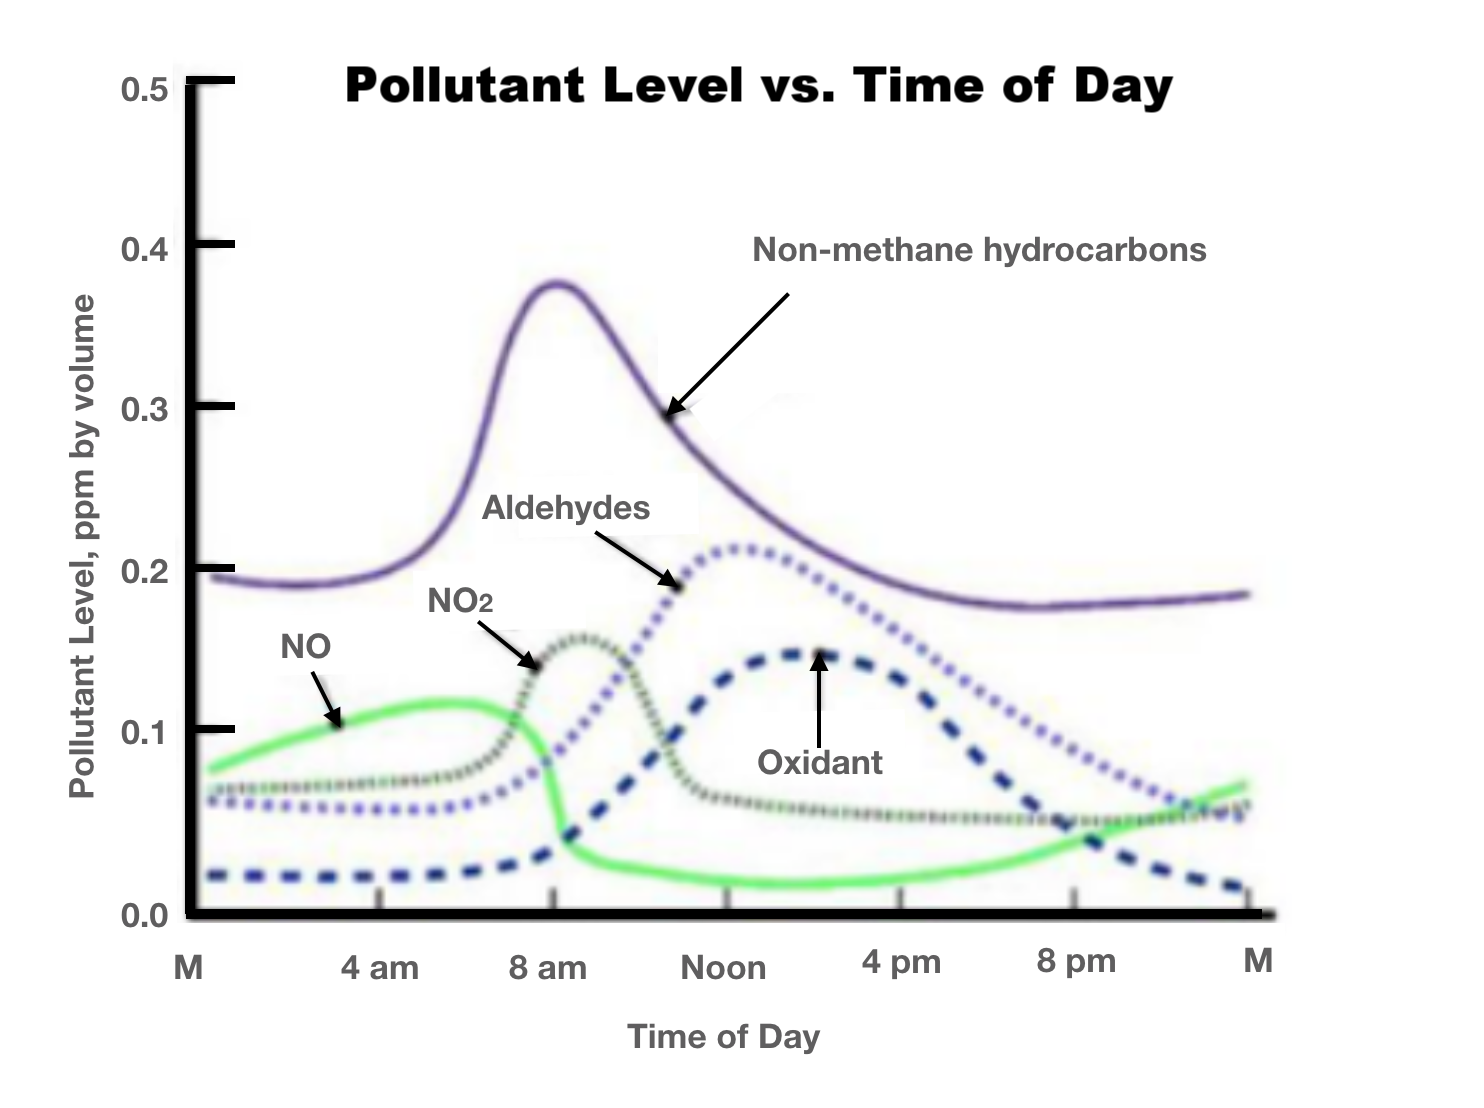 Figure 5. Stanley E. Manahan, Fundamentals of Environmental Chemistry (Boca Raton, FL, Lewis Publishers, 1993), 630.